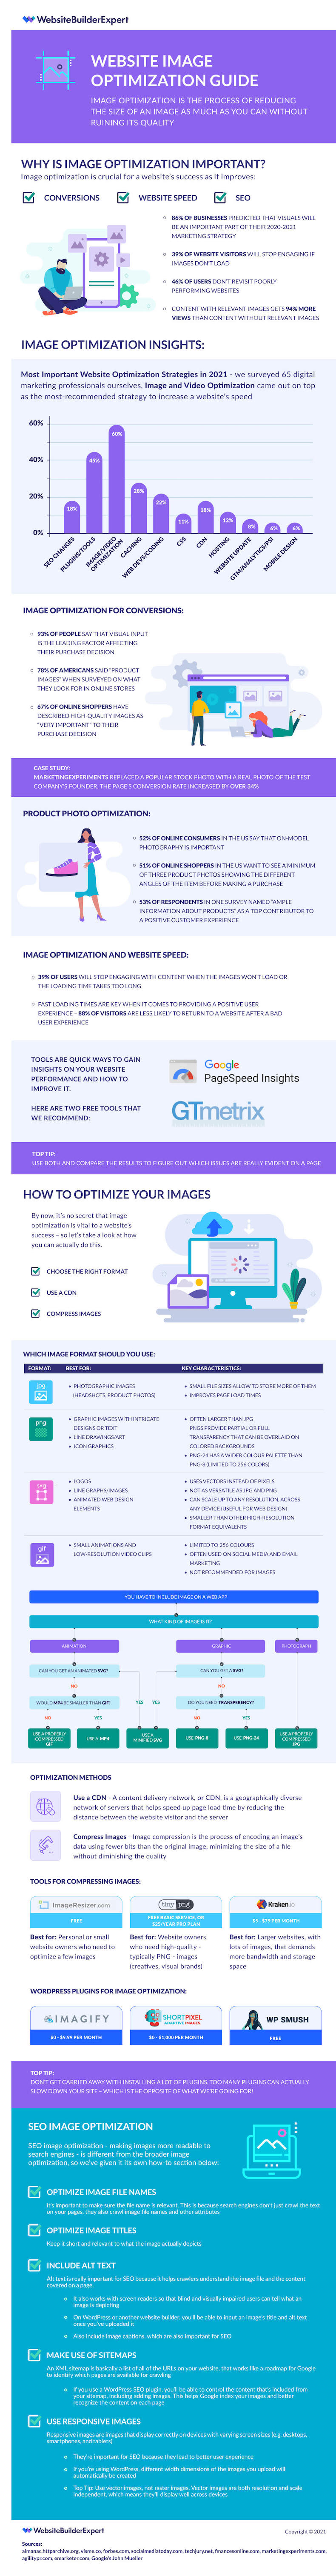 How to optimize your website images infographic